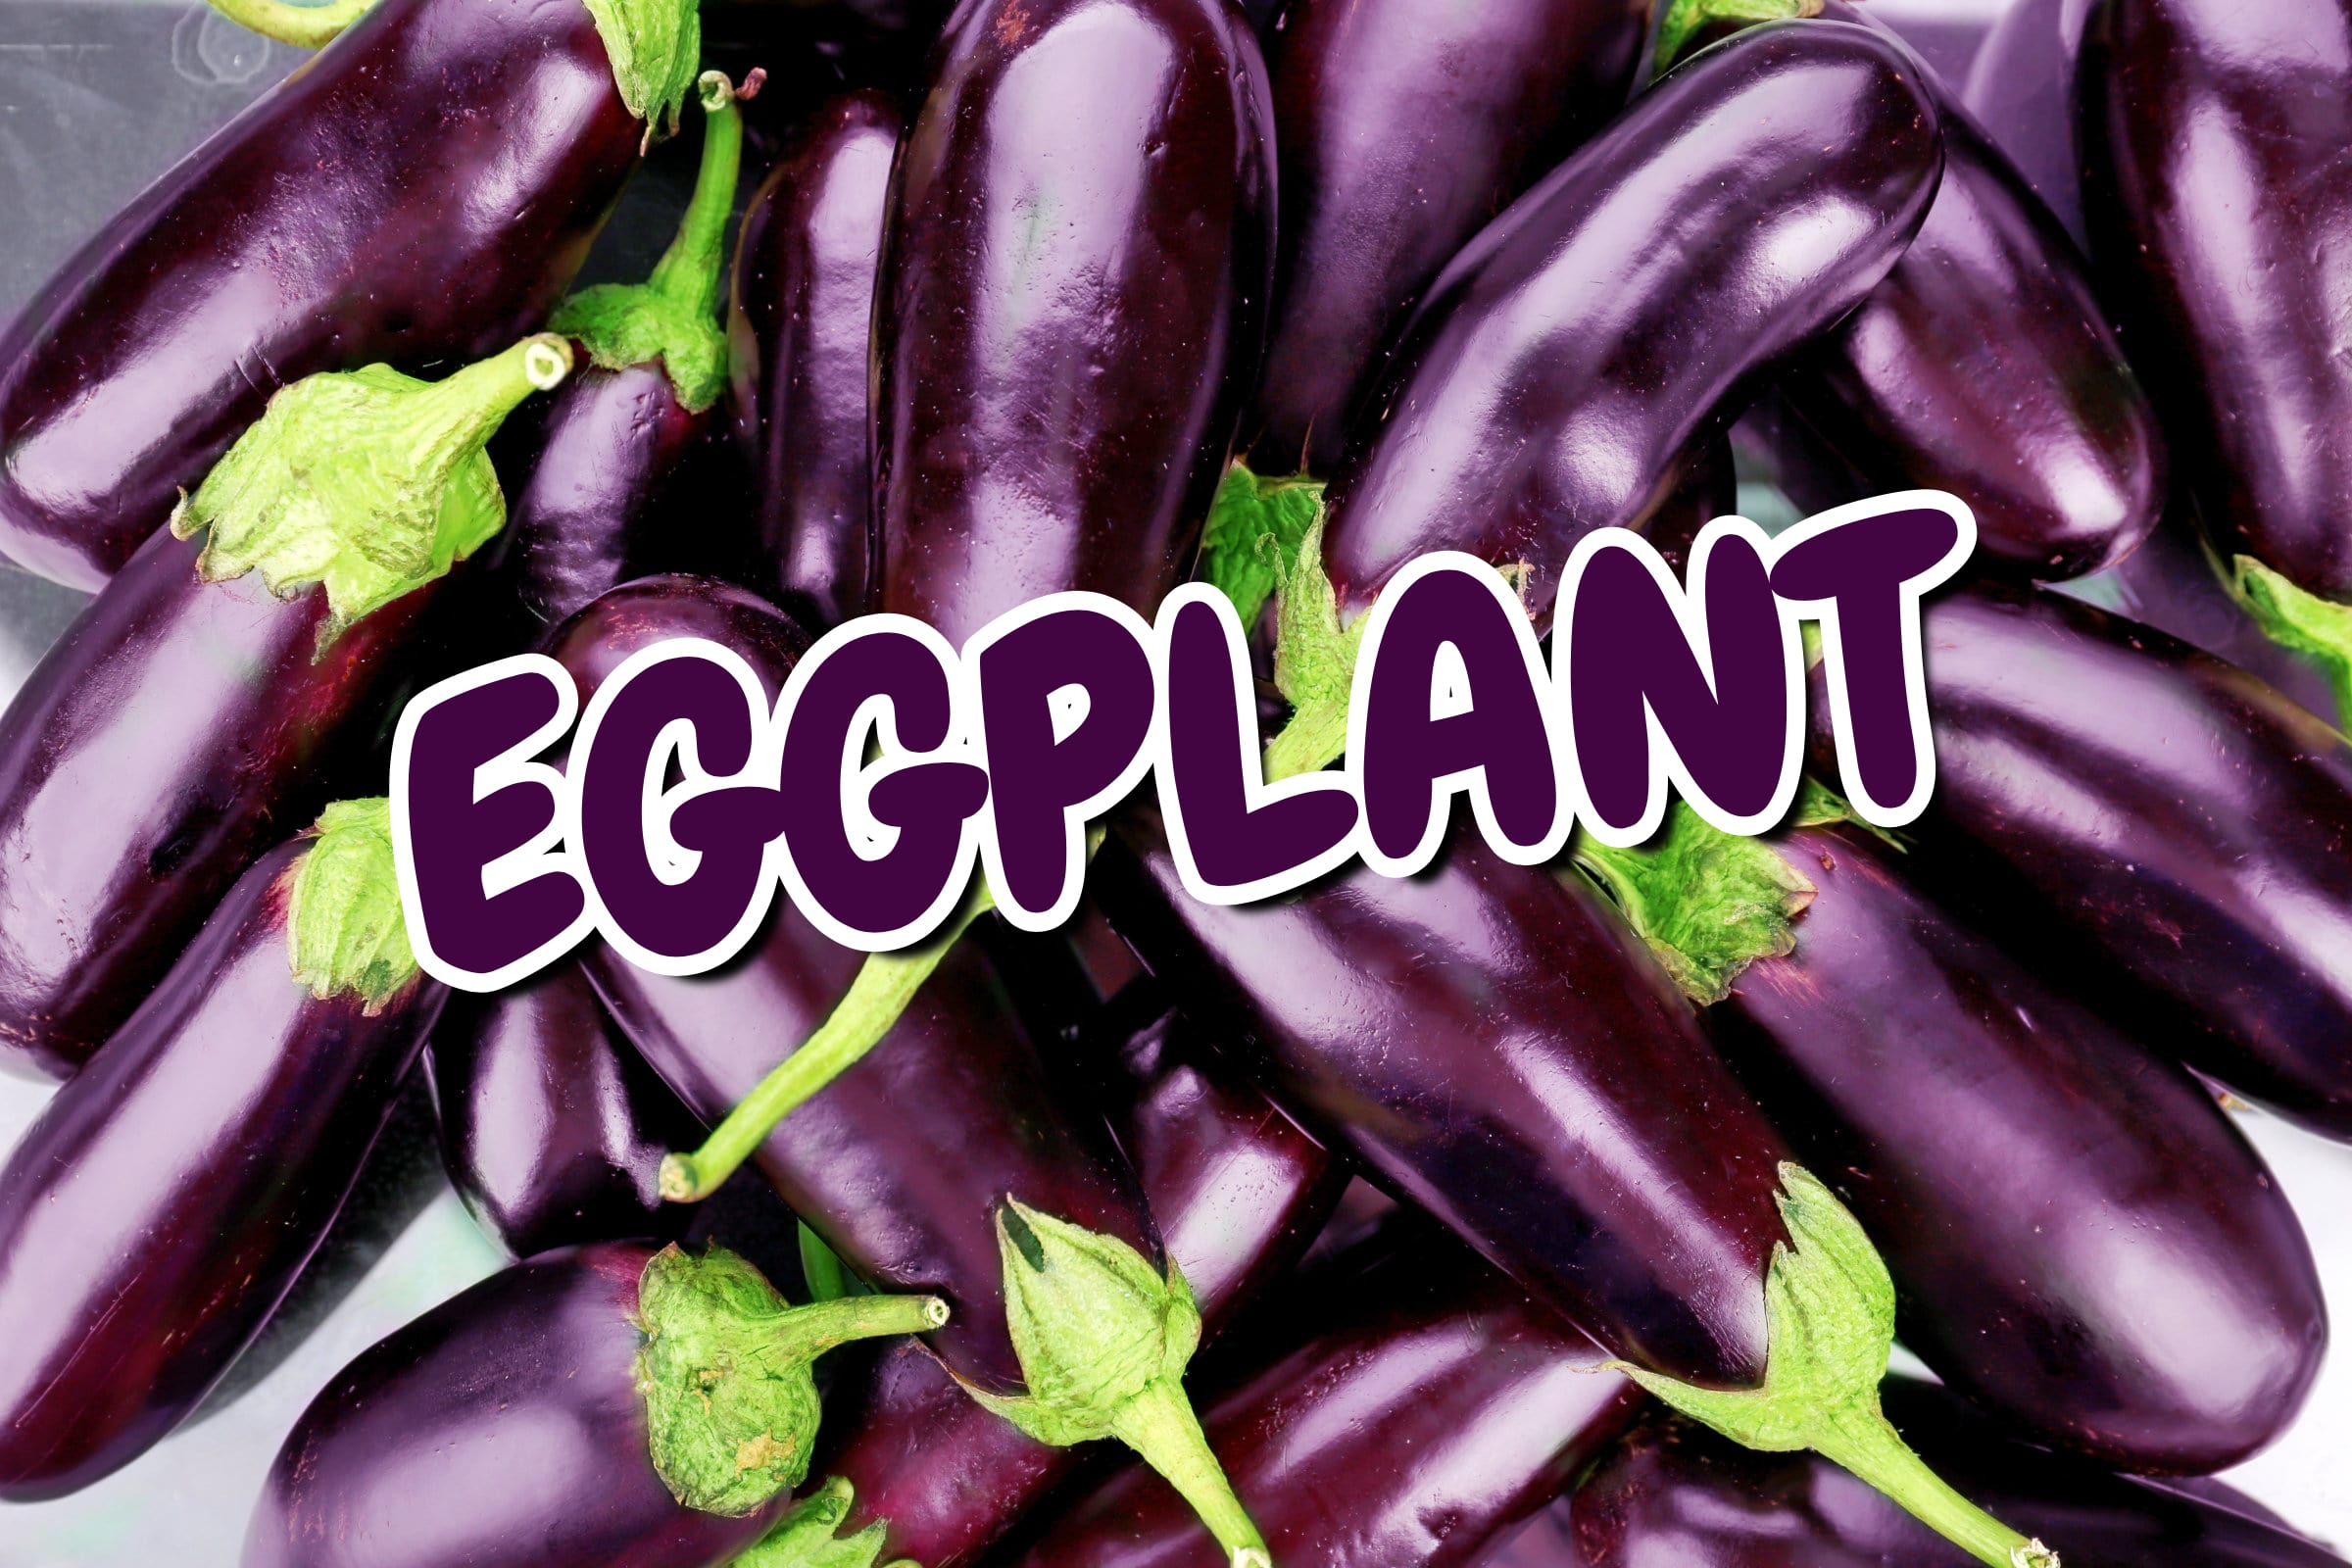 What Is The Eggplant?